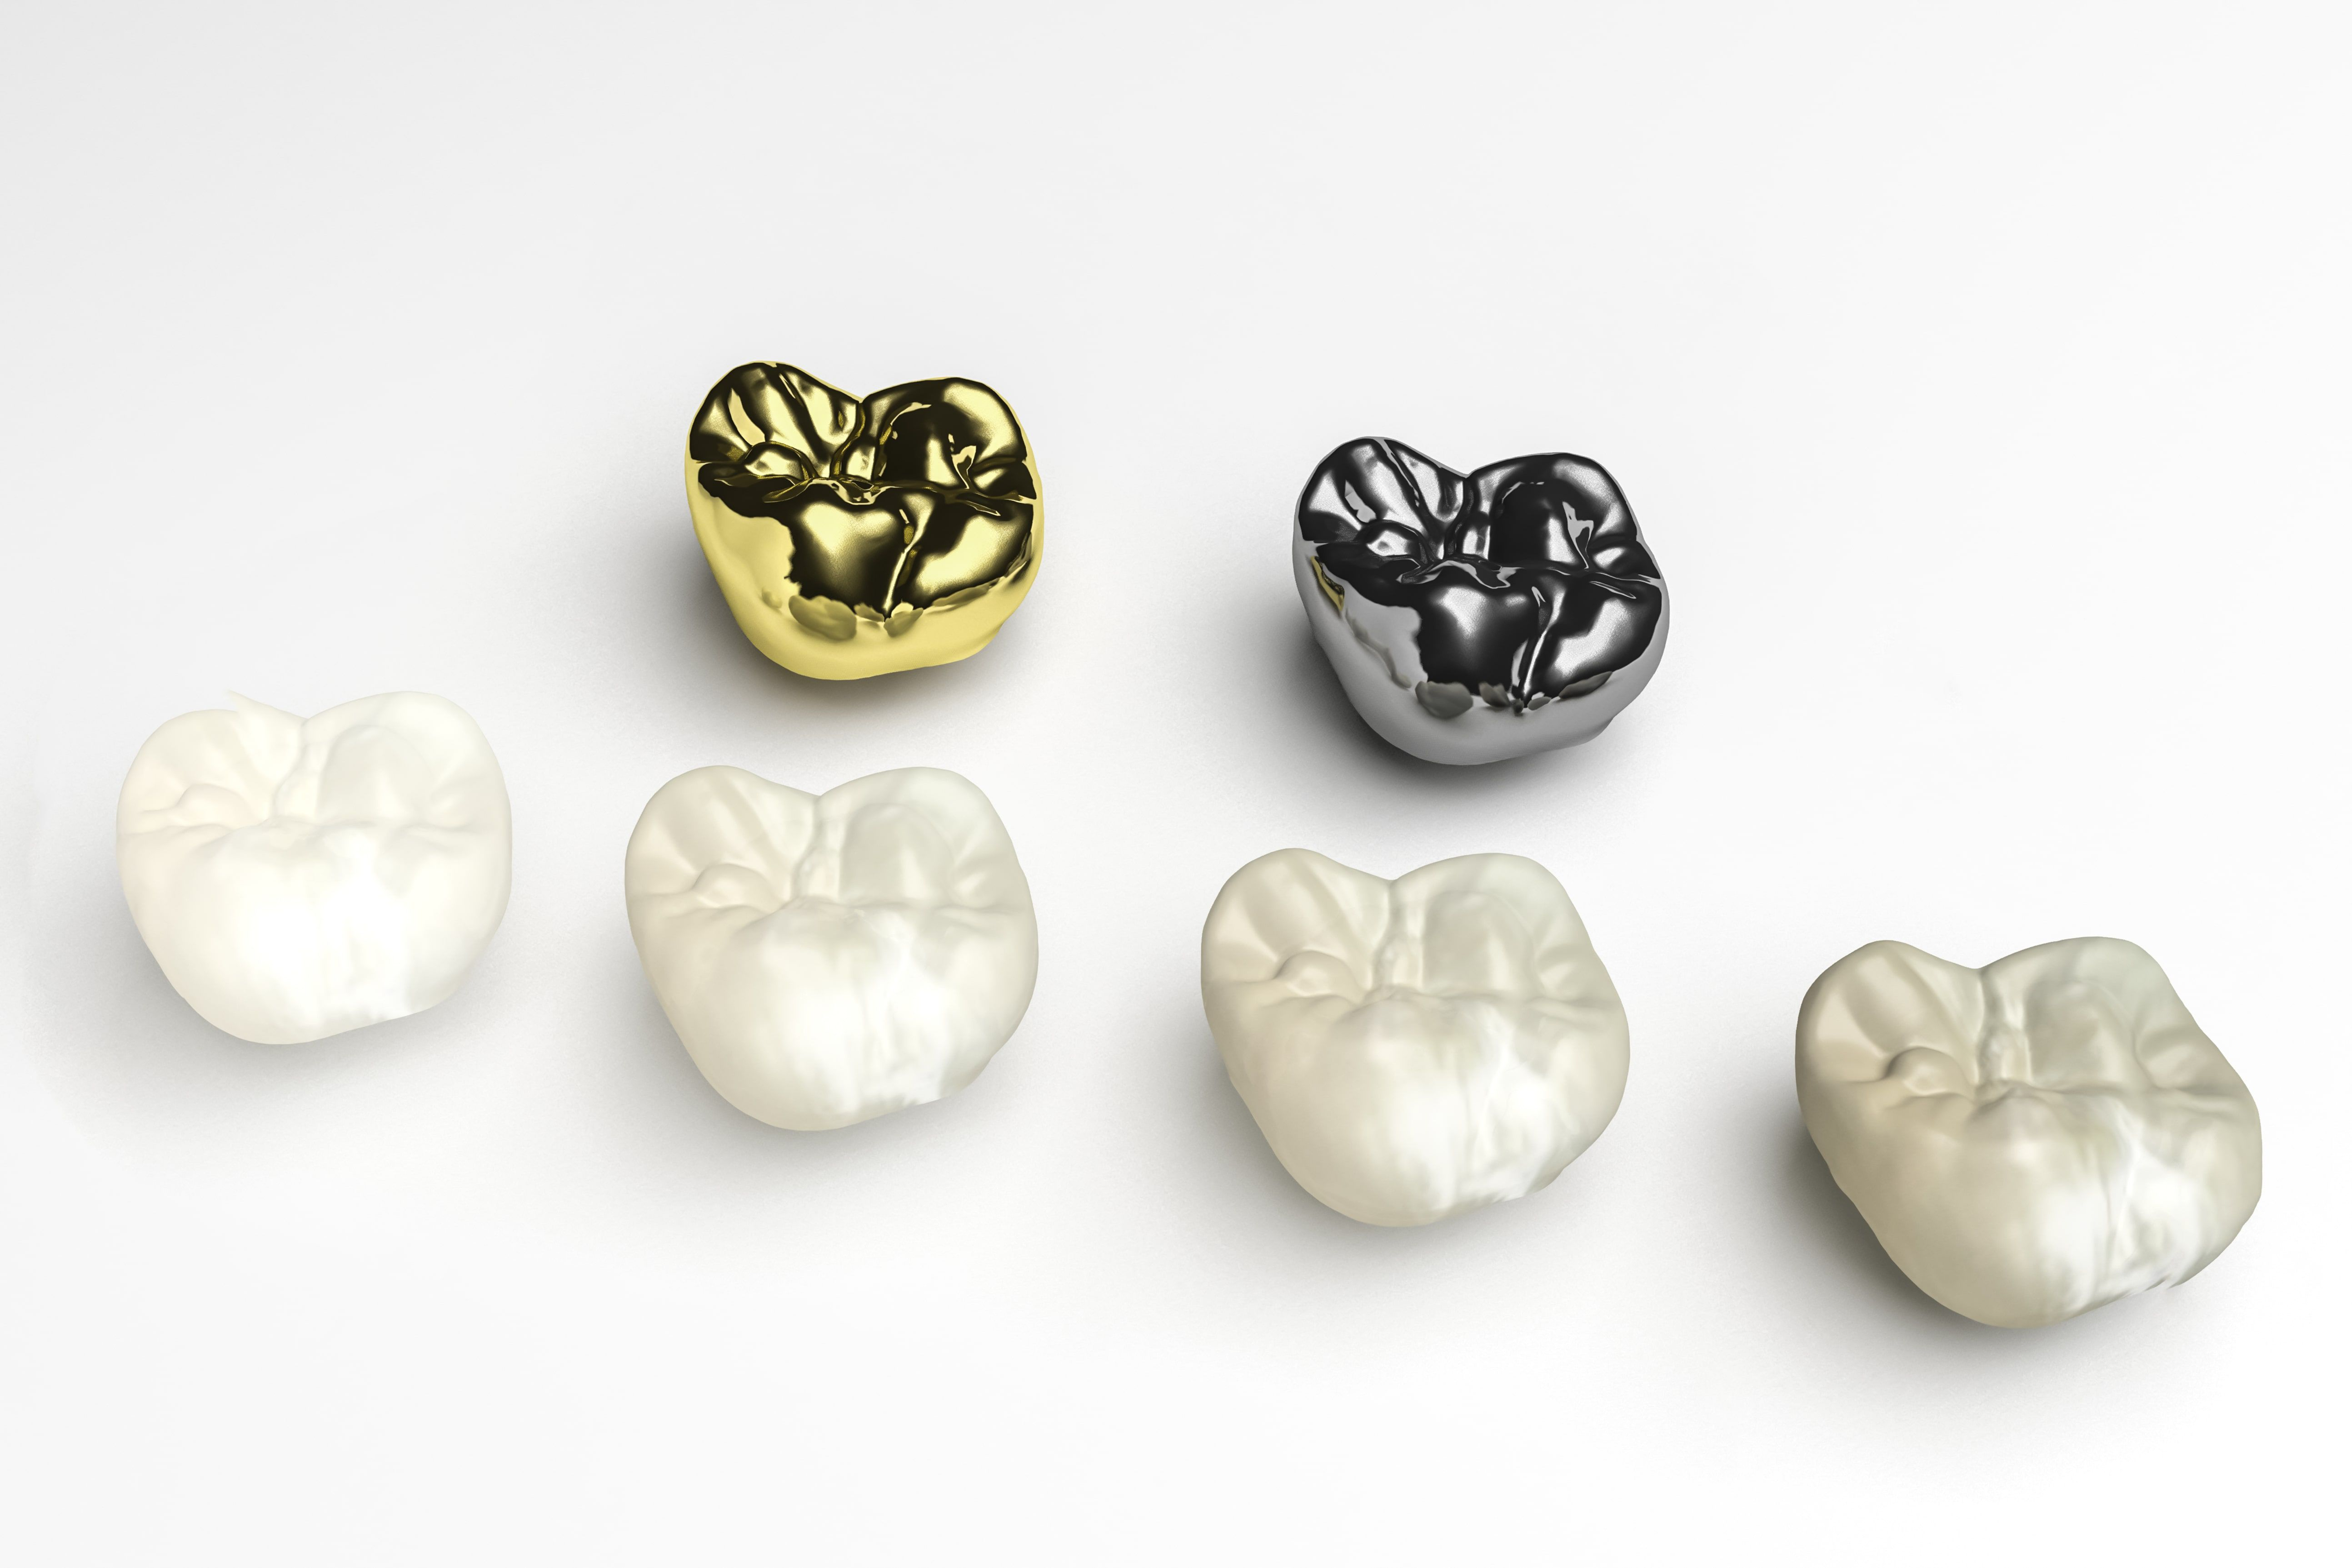 Types of dental crowns on a white background